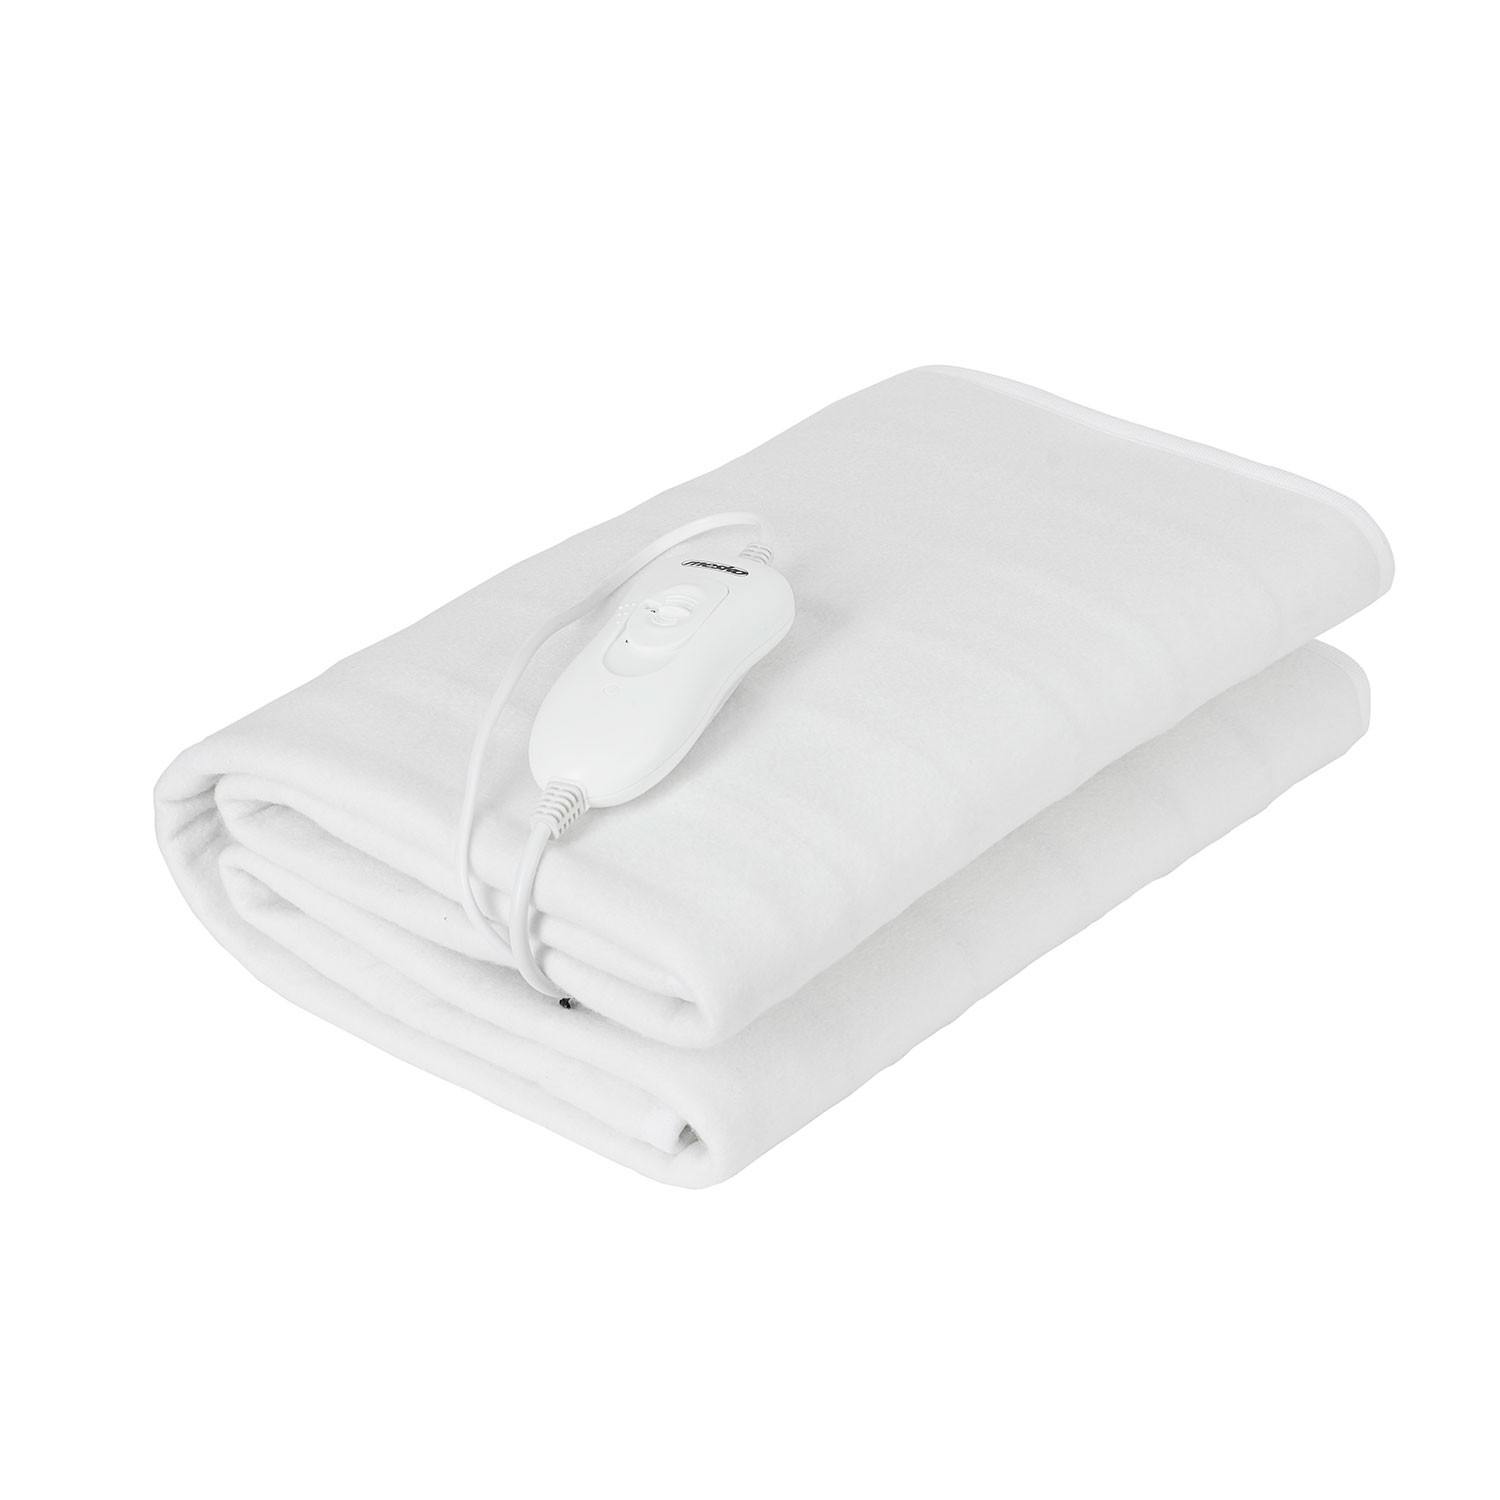 Mesko MS7419 Heated Electric Beds 150x80 Cm 3 Levels Temperature, Timer, Washable, Polar Fleece White, 60W